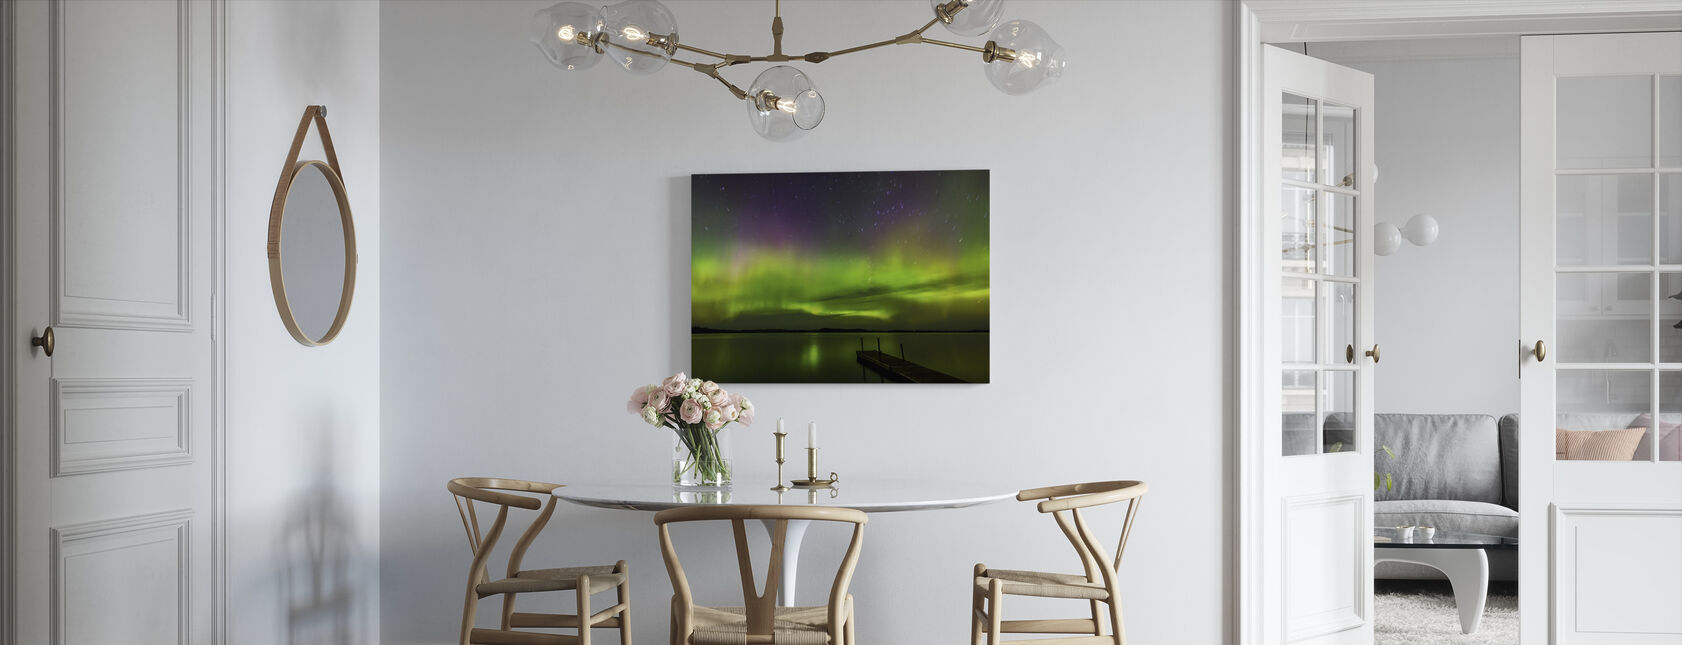 Aurora Borealis over Burntside Lake - Canvas print - Kitchen